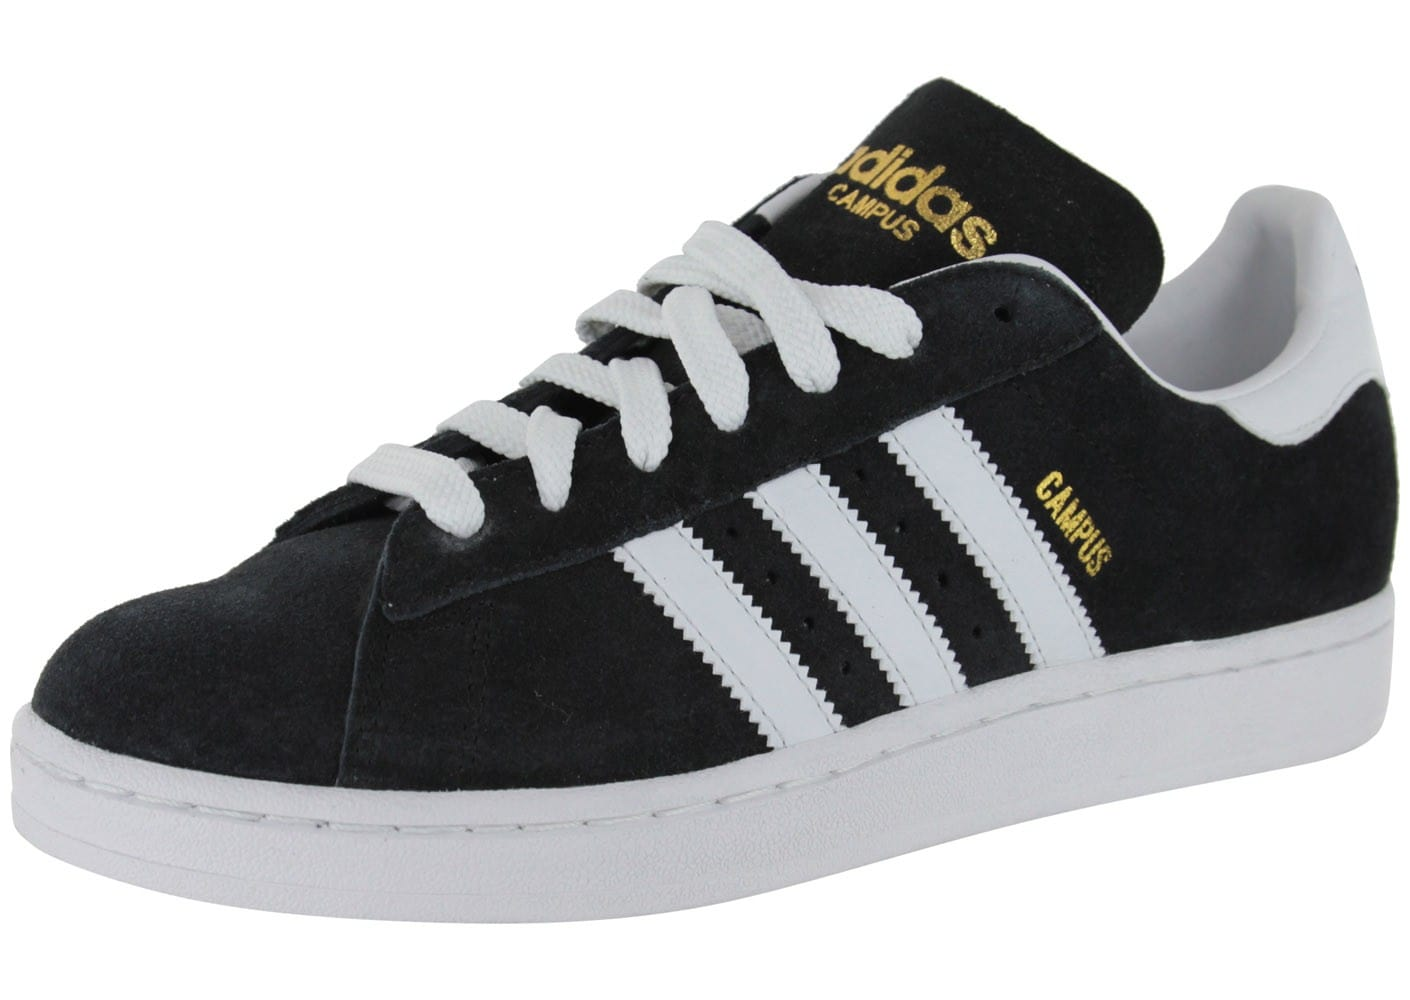 Adidas Campus Mid Shoes